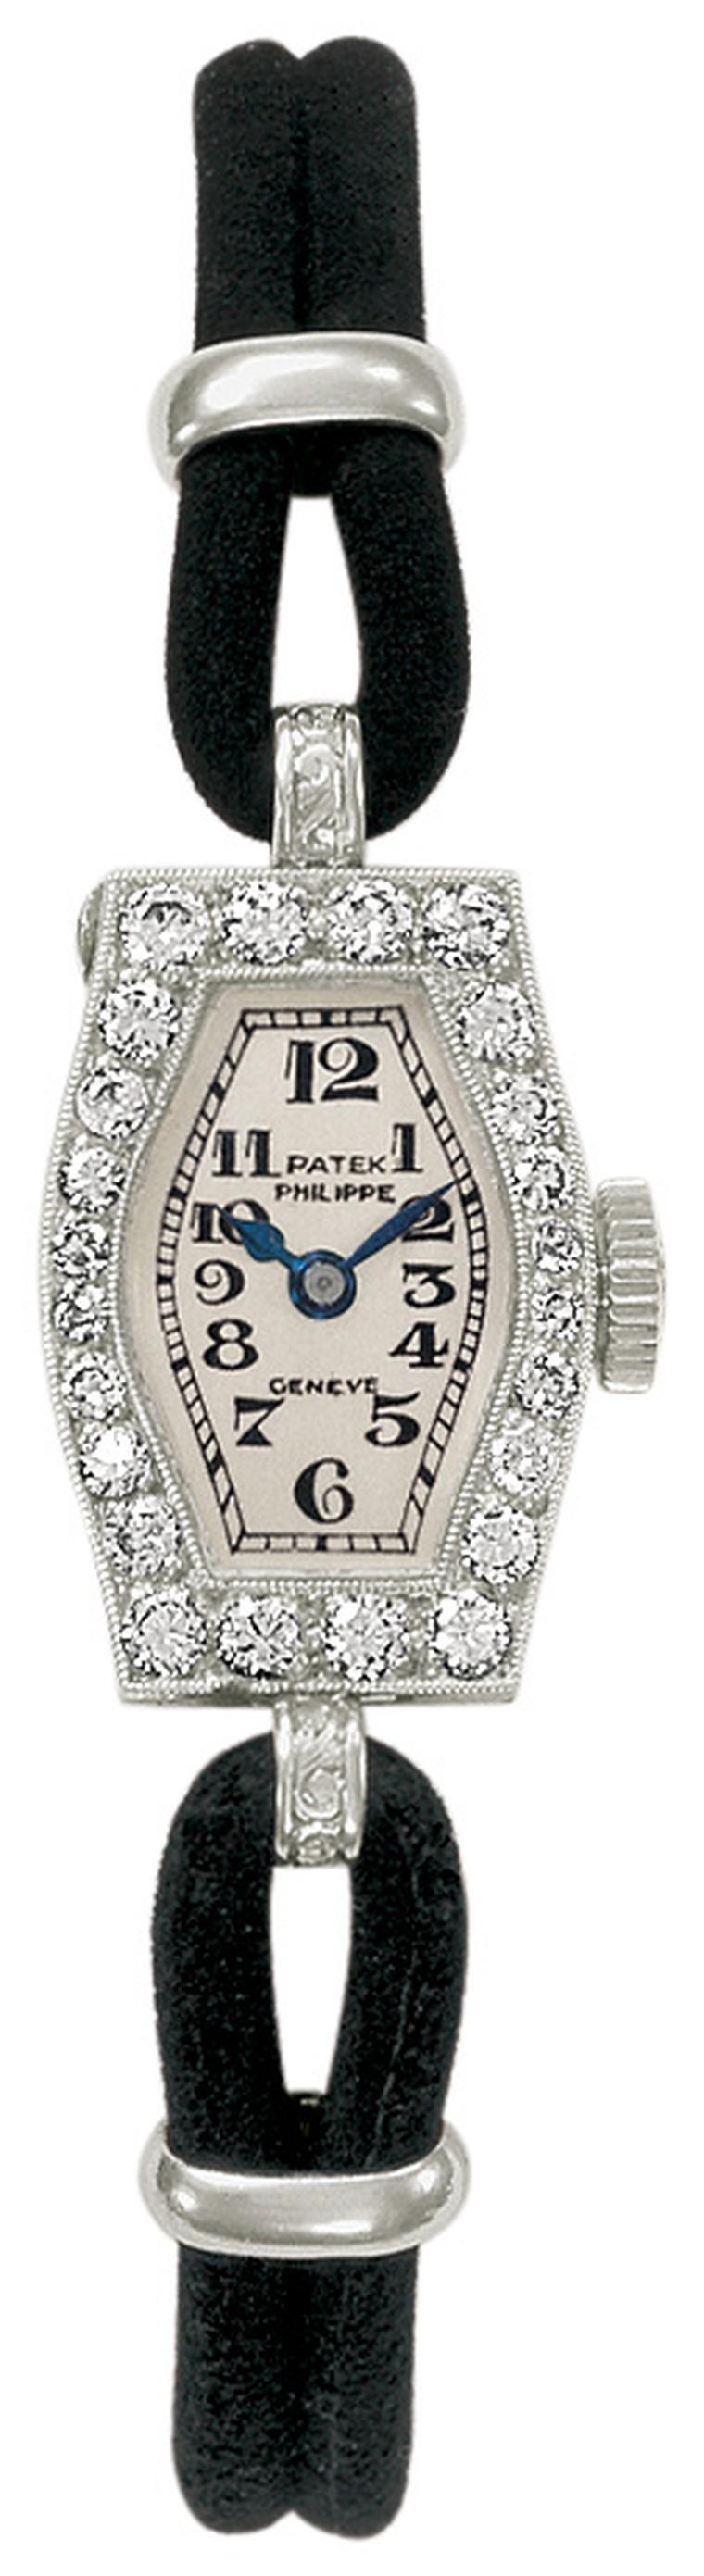 Patek-Philippe-P0587_a_100_collection-1925-40